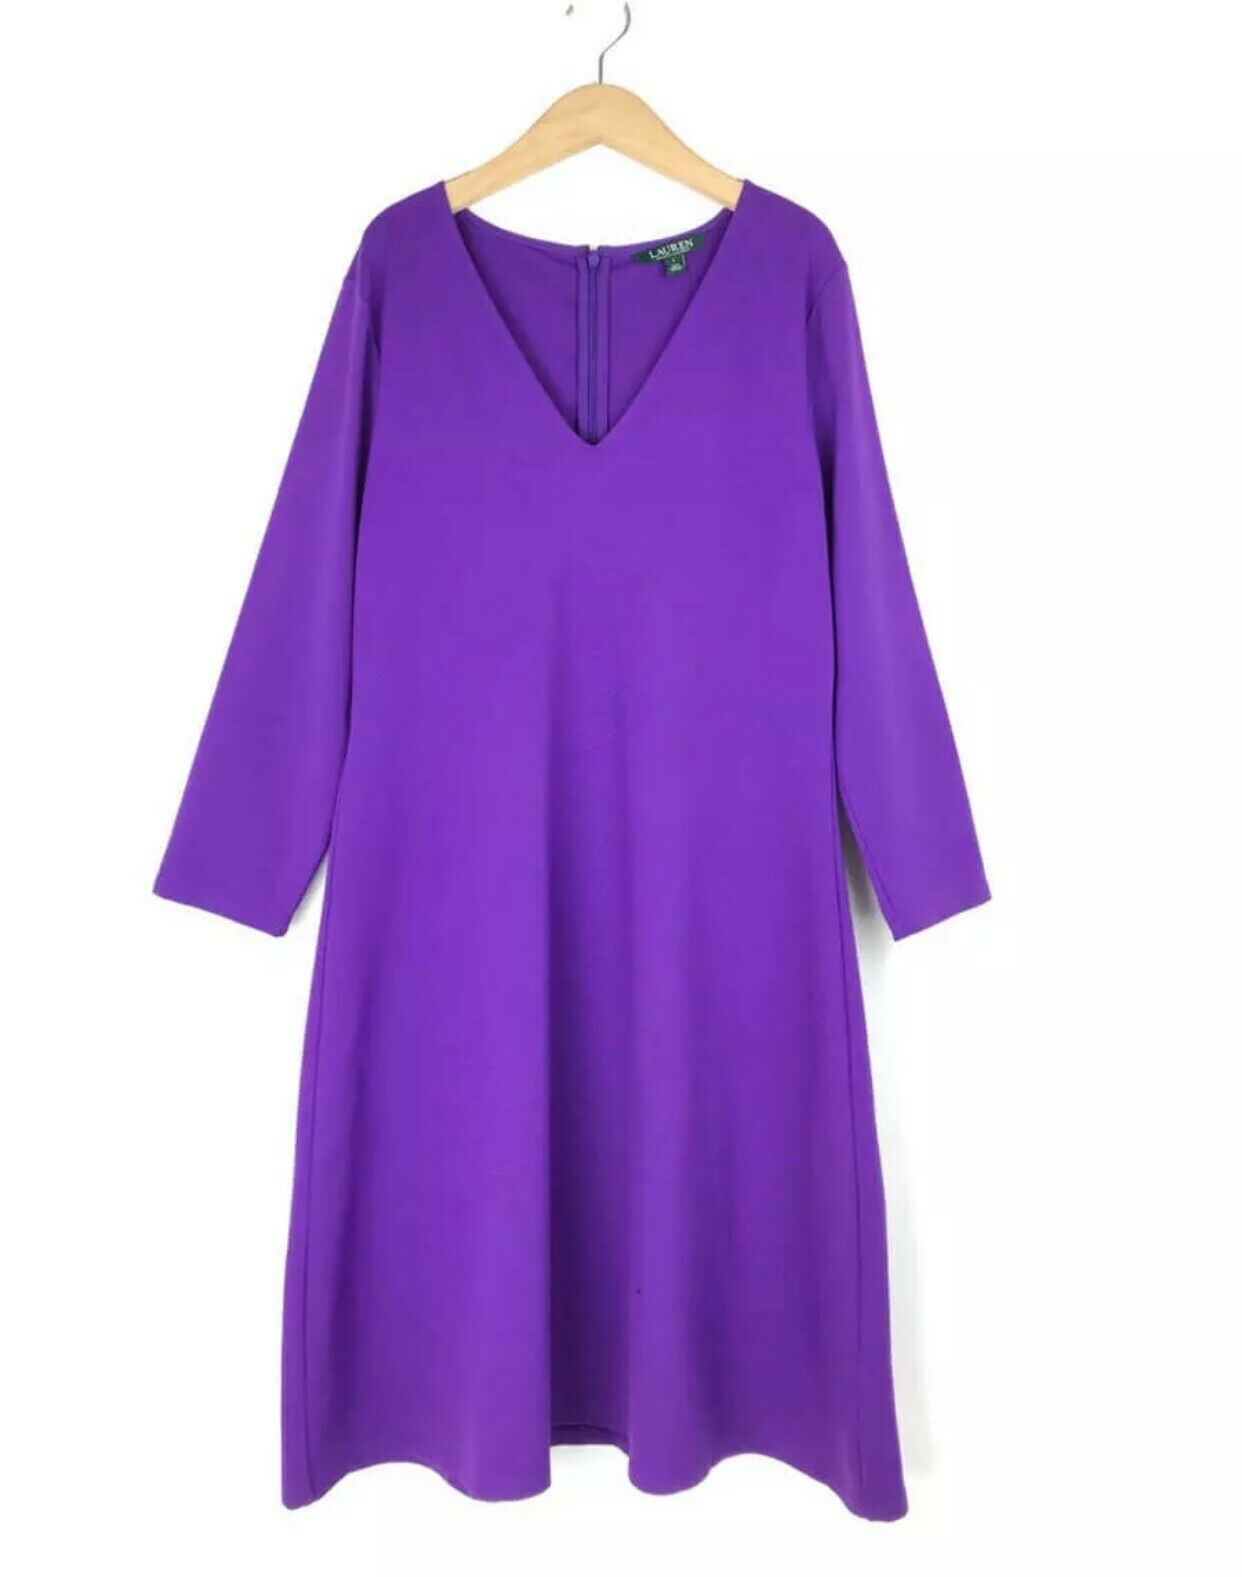 BNWT Lauren Ralph Lauren Stunning Purple Dress Size M BNWT RRP